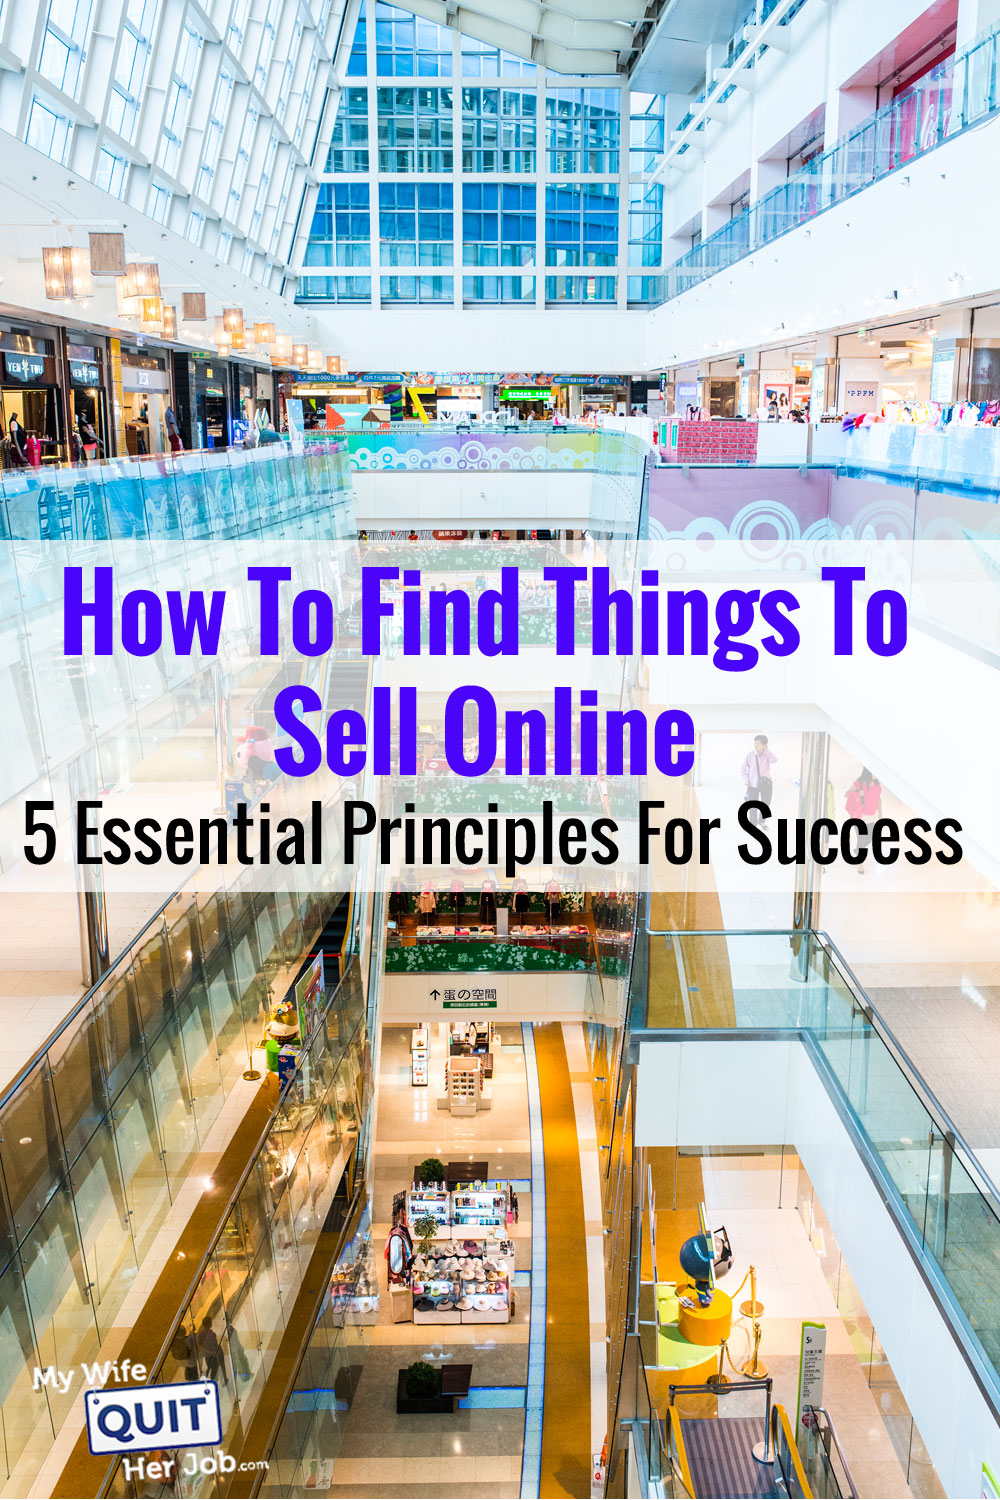 How To Find Things To Sell Online - 5 Essential Principles For Long Term Success